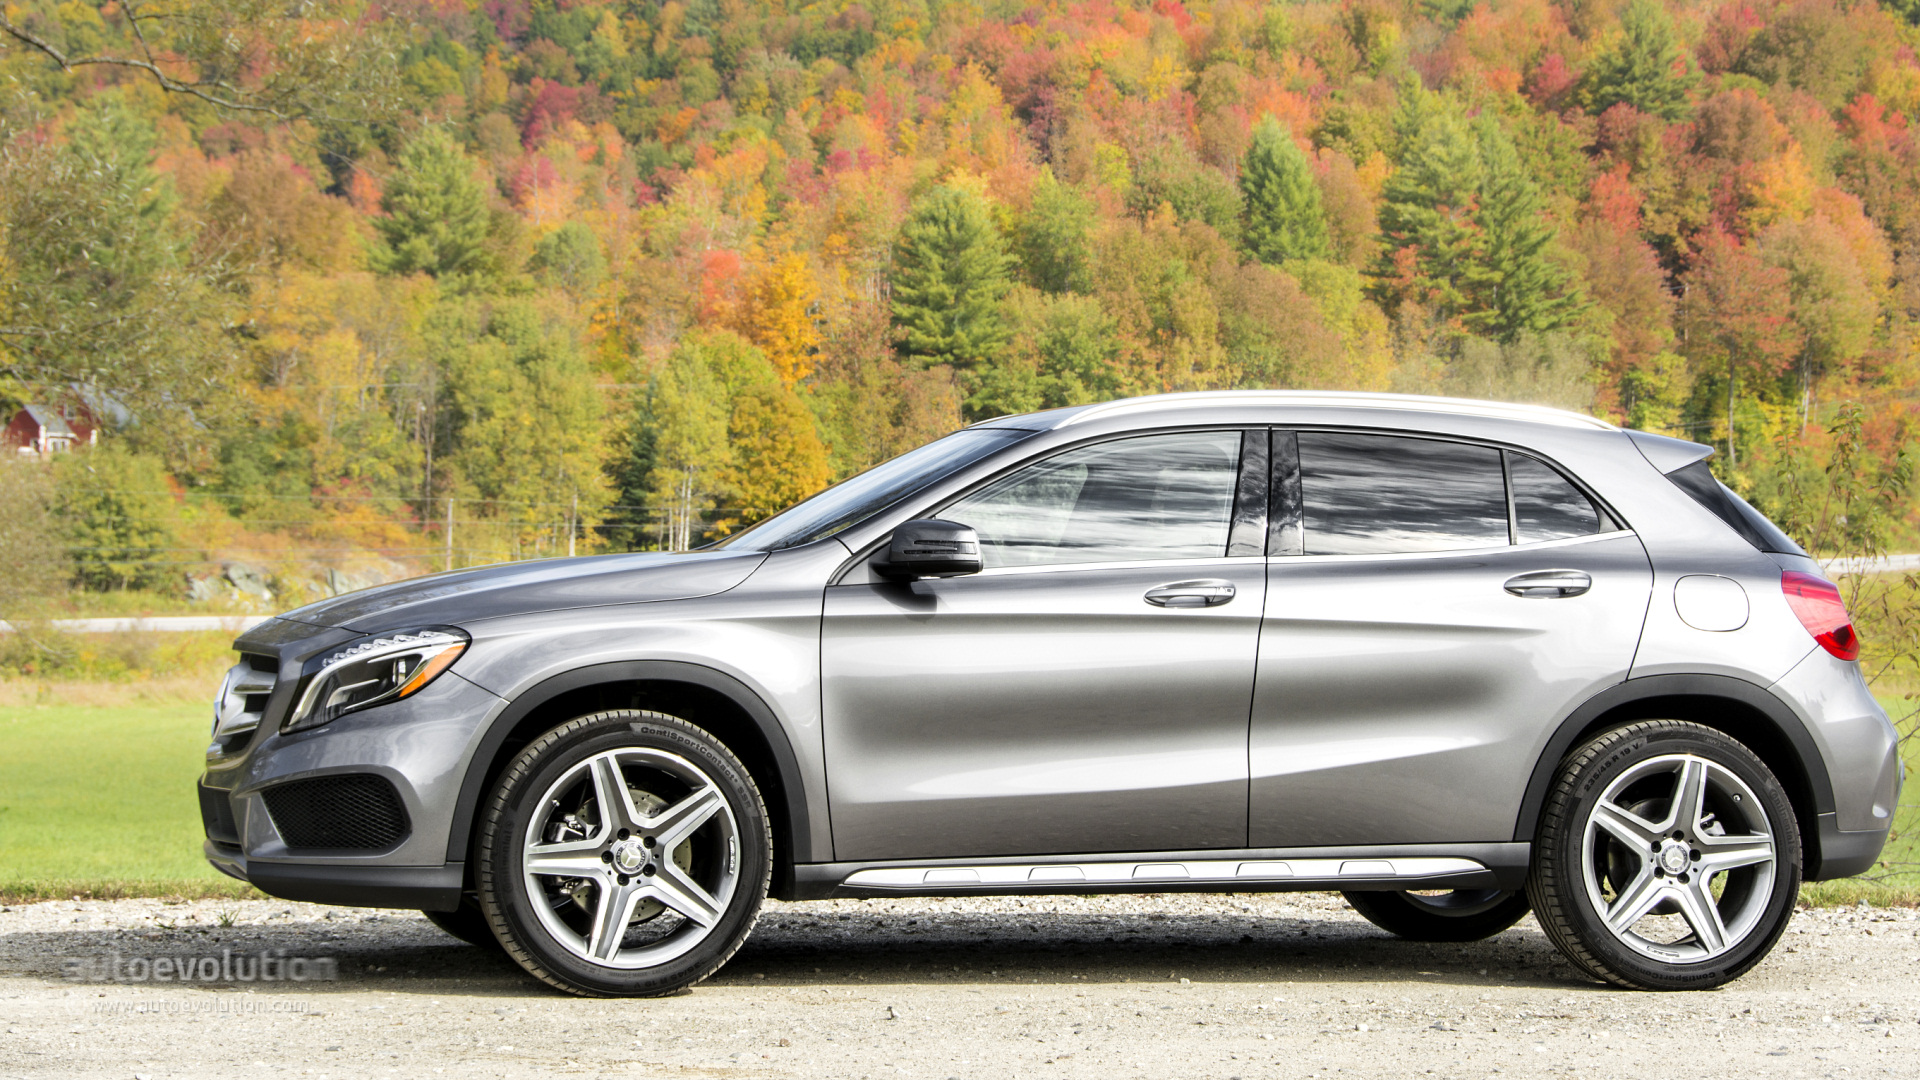 2015 mercedes benz gla250 4matic gla45 amg review for Mercedes benz gla 250 4matic